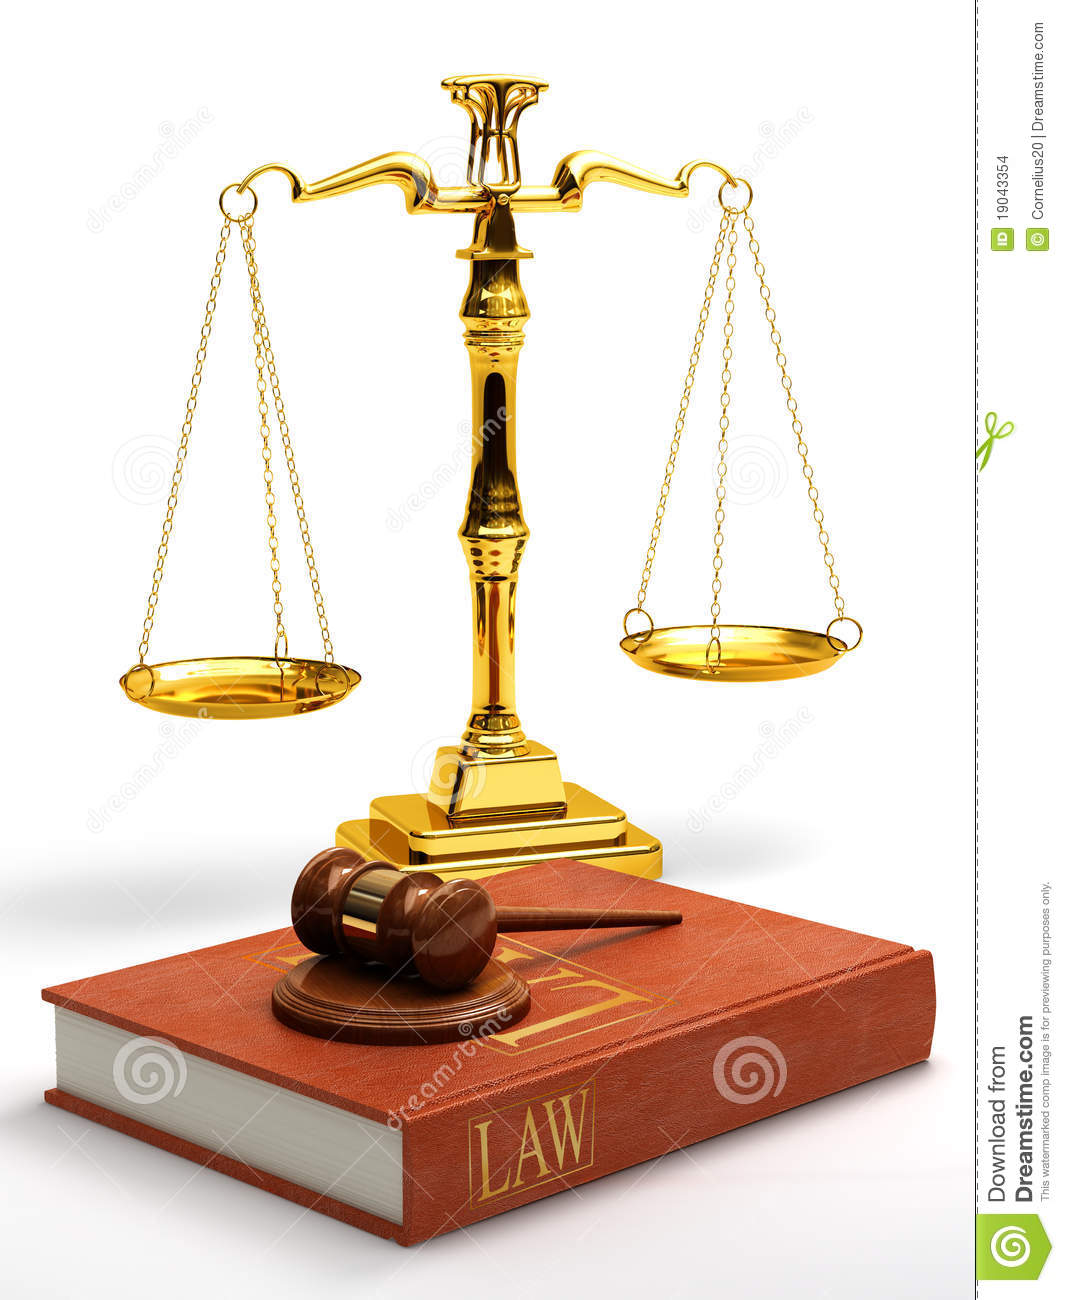 law scale and gavel -#main